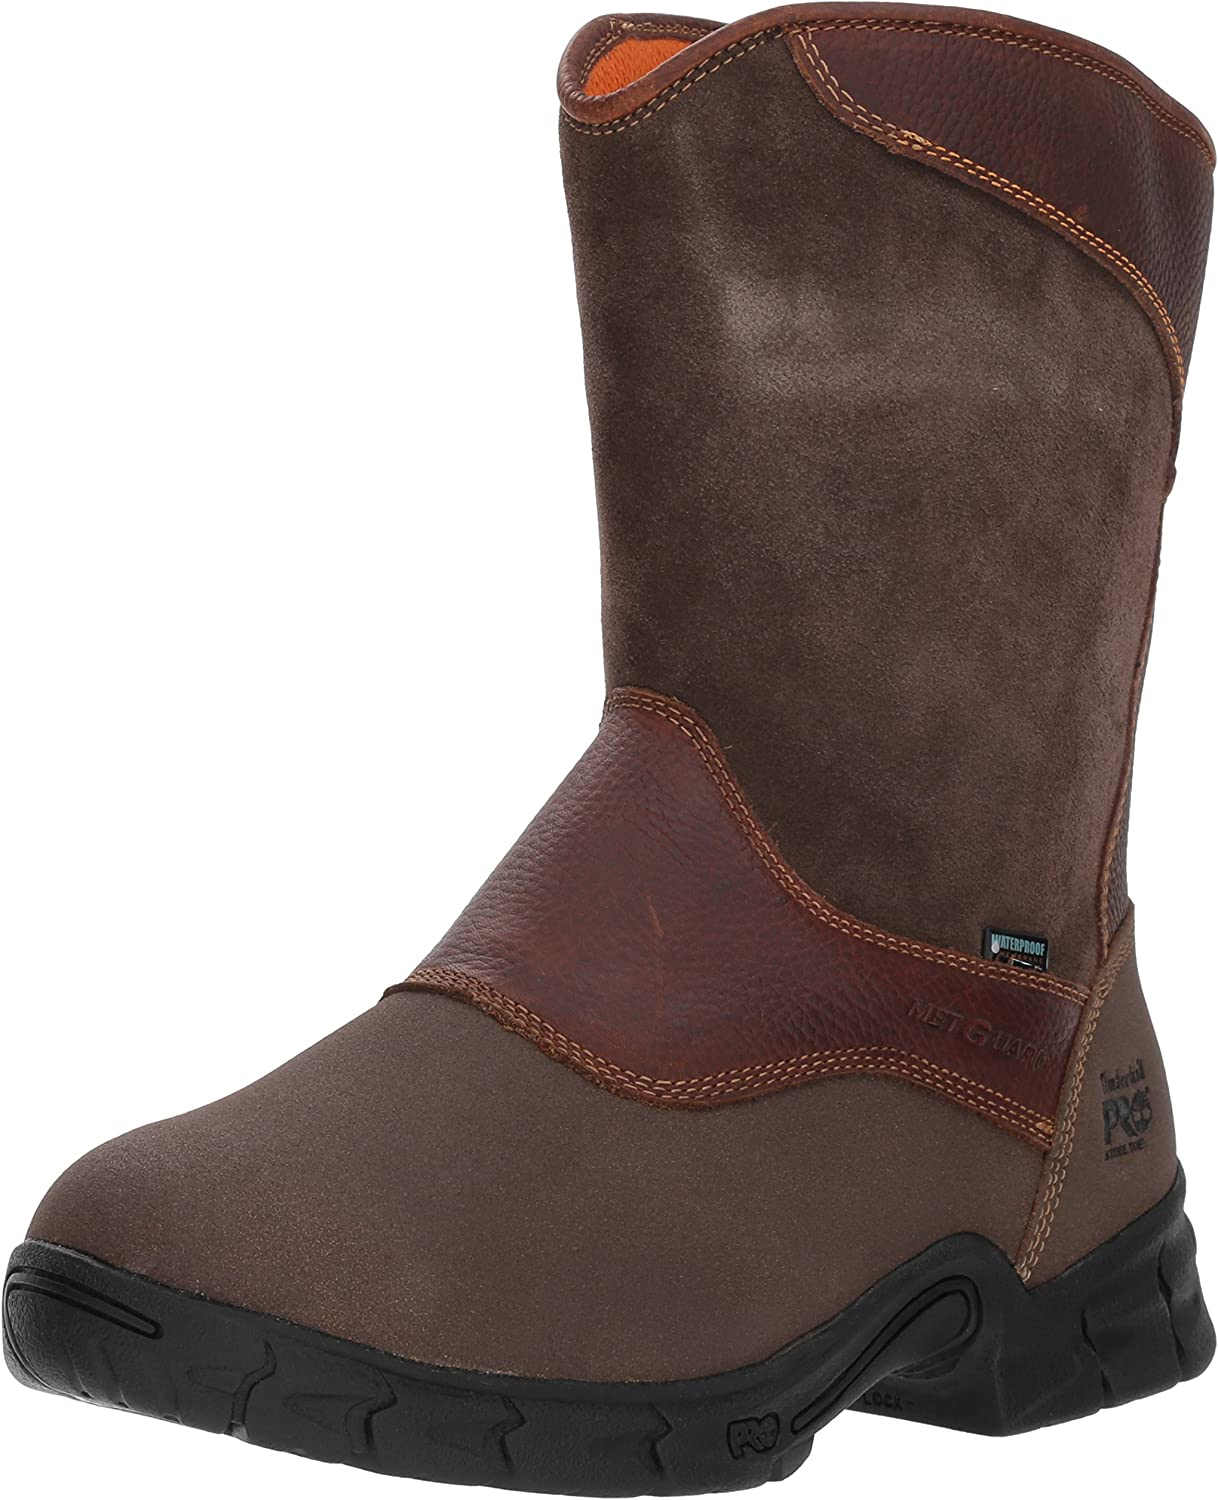 Timberland PRO Men's Excave Met Wellington Work Boot,Brown Tumbled,13 W US